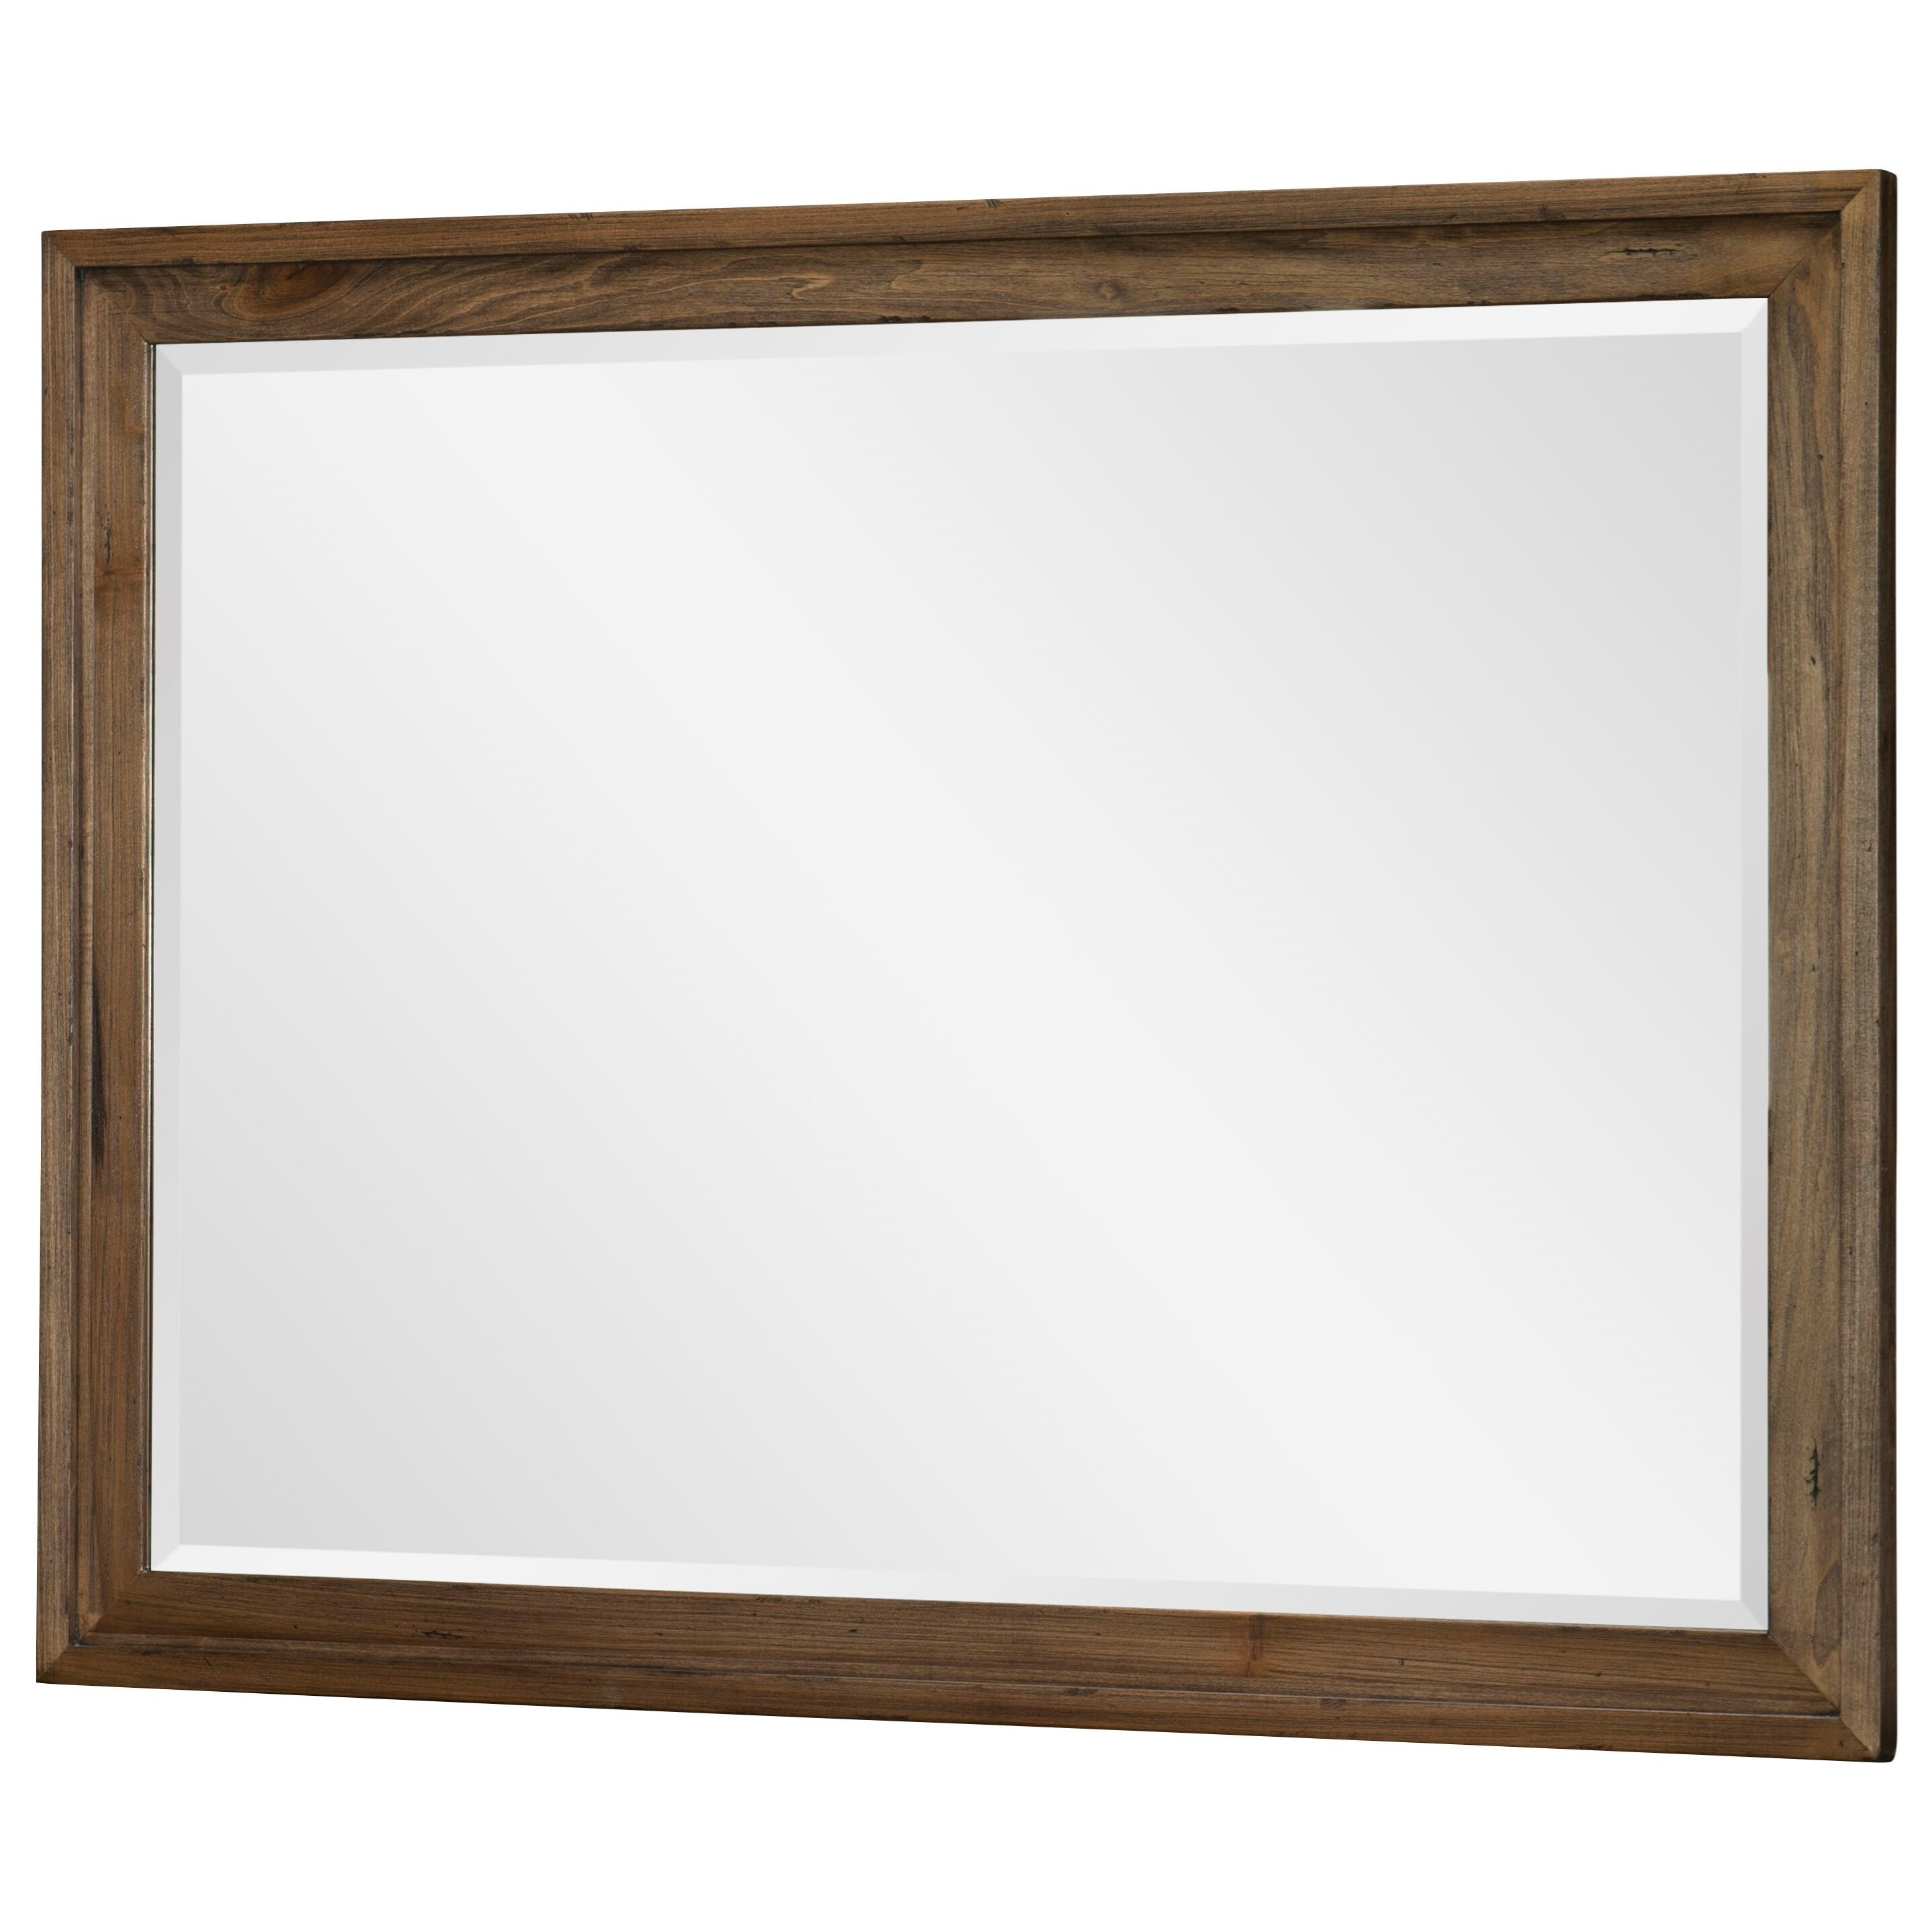 Lumberton Mirror by Legacy Classic at Darvin Furniture